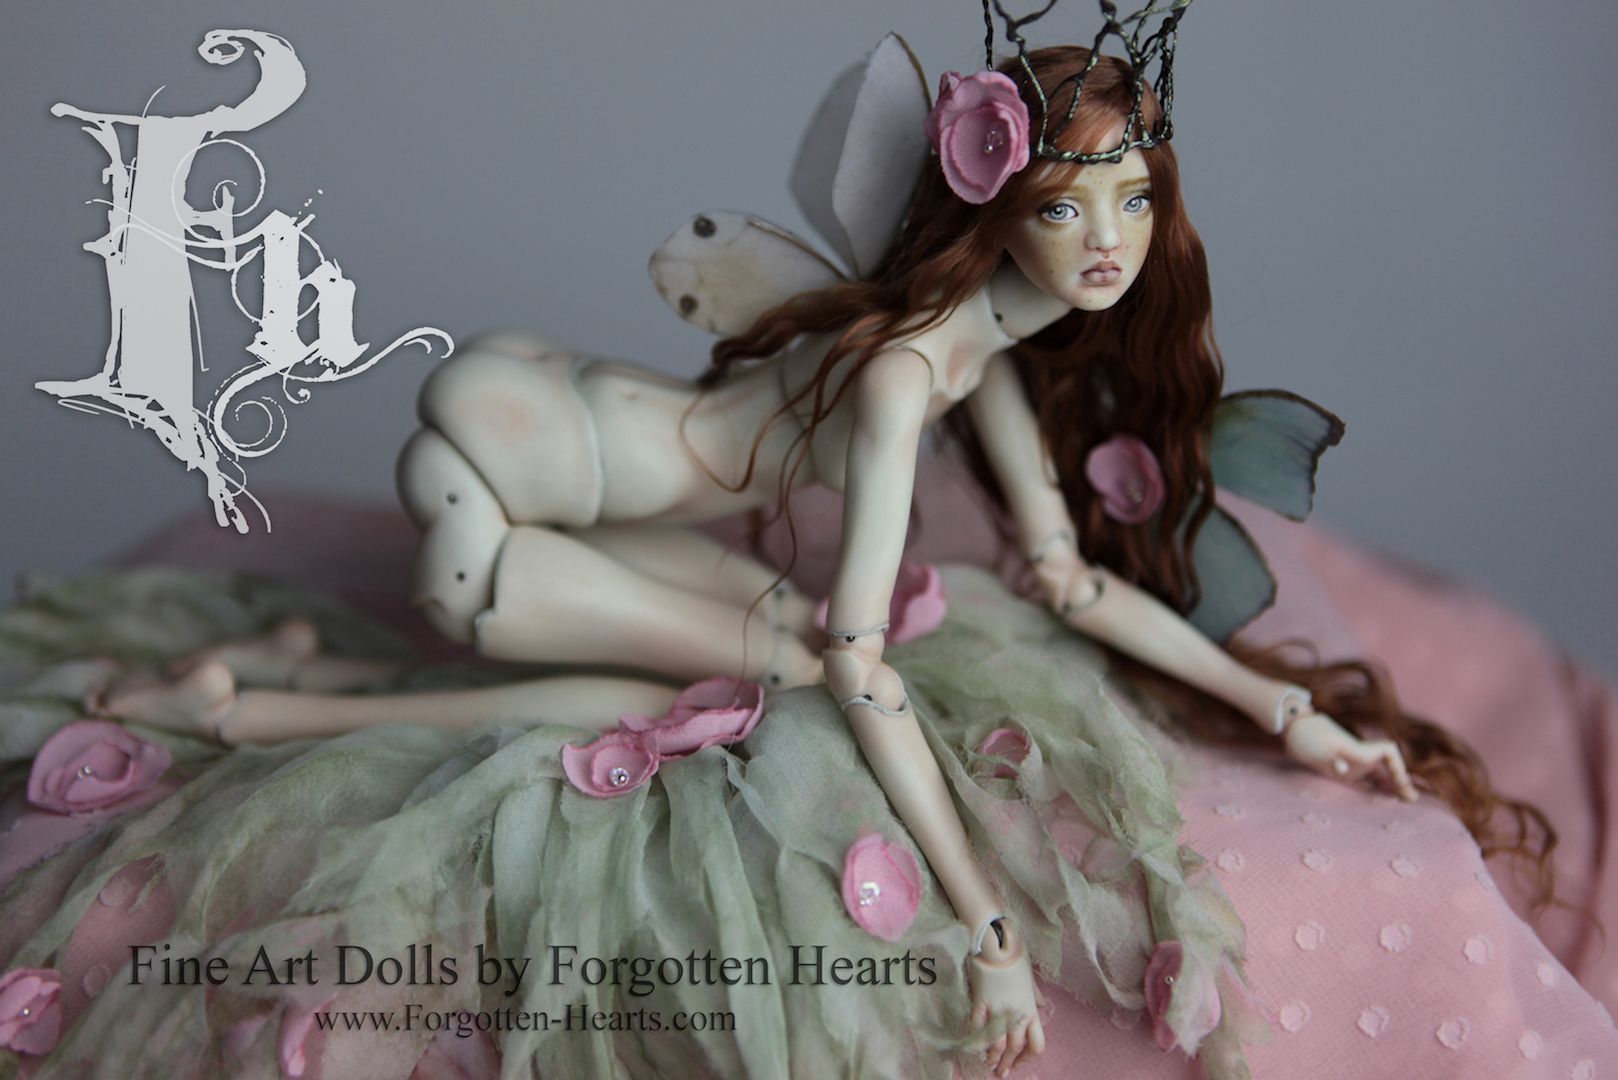 Ball Jointed Dolls | Porcelain BJD Dolls by Forgotten Hearts